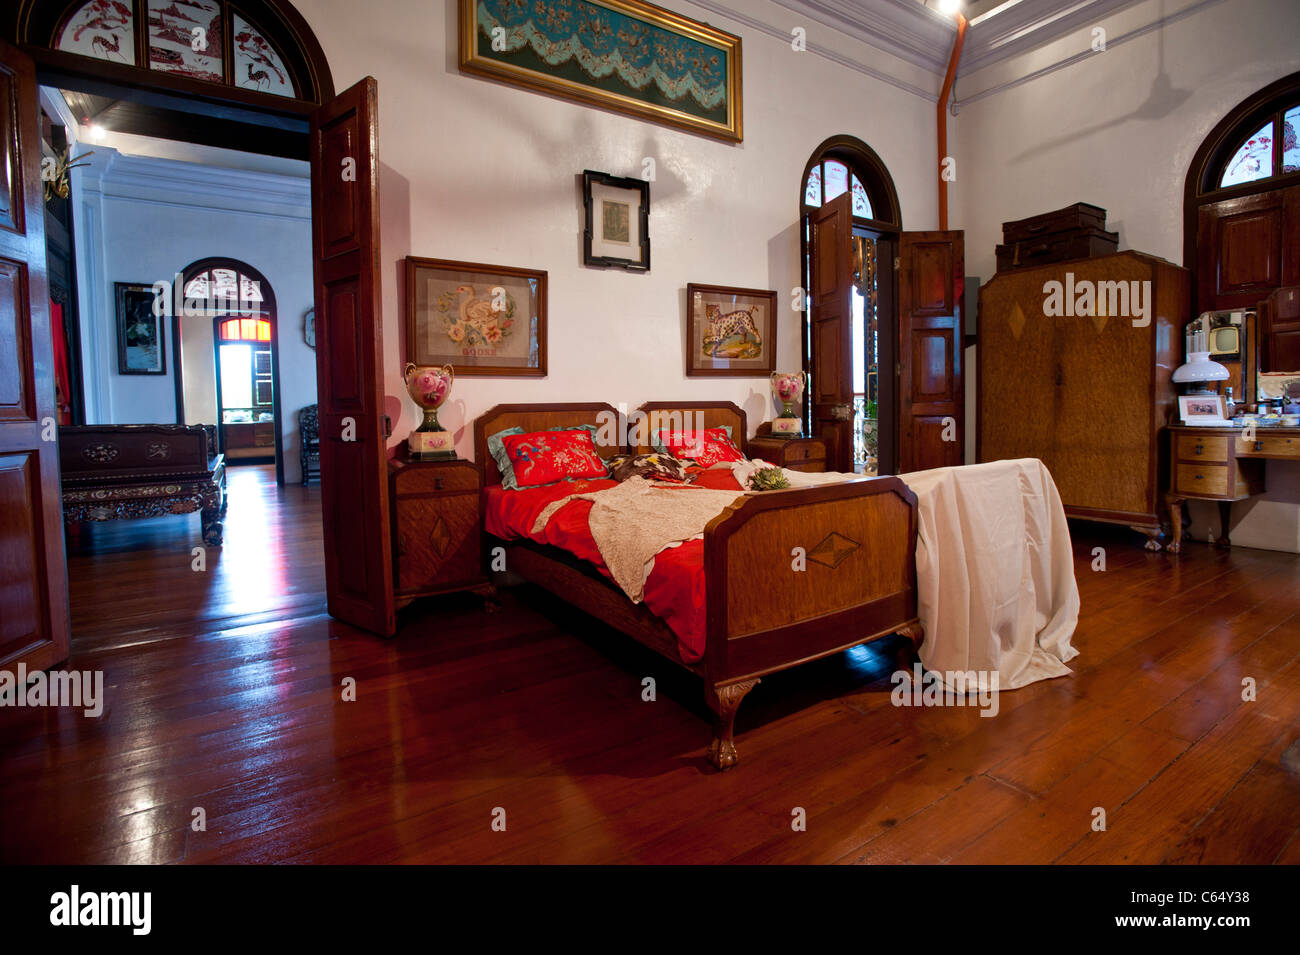 Master Bedroom in the Peranakan Mansion, George Town, Penang Malaysia - Stock Image